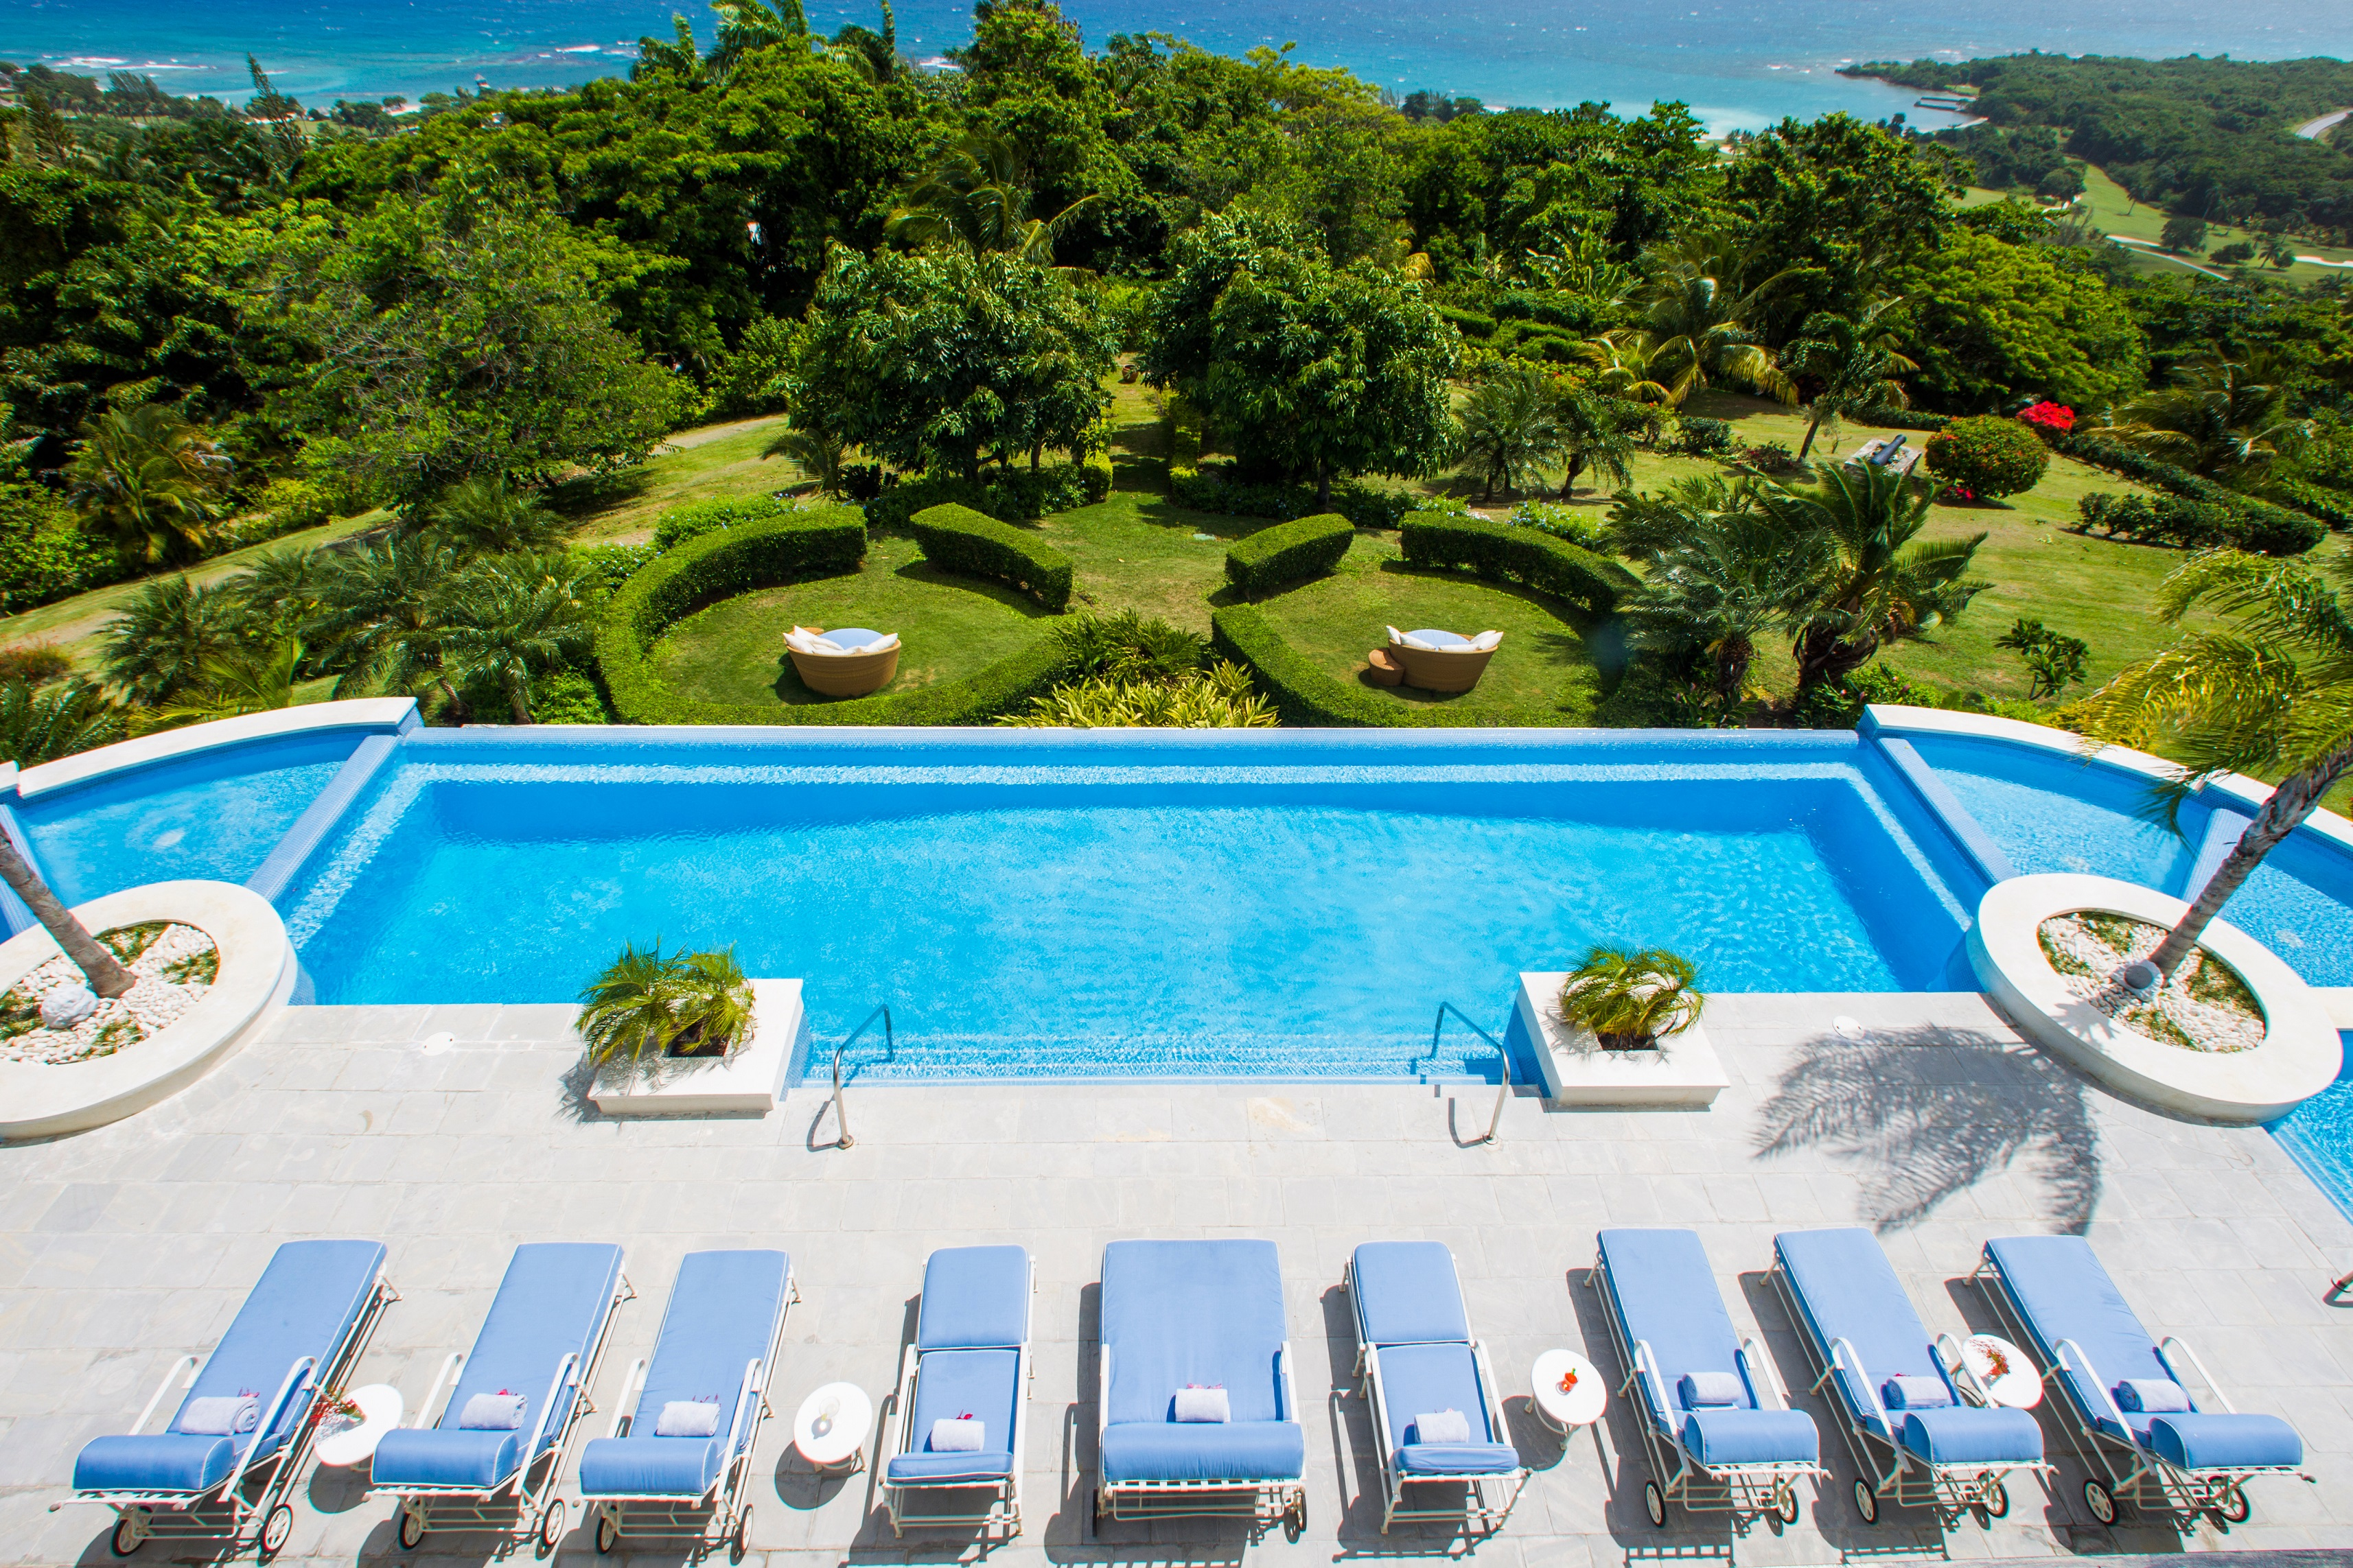 TwinPalms pool Tryall Lap in Luxury: Best Pools in the Caribbean